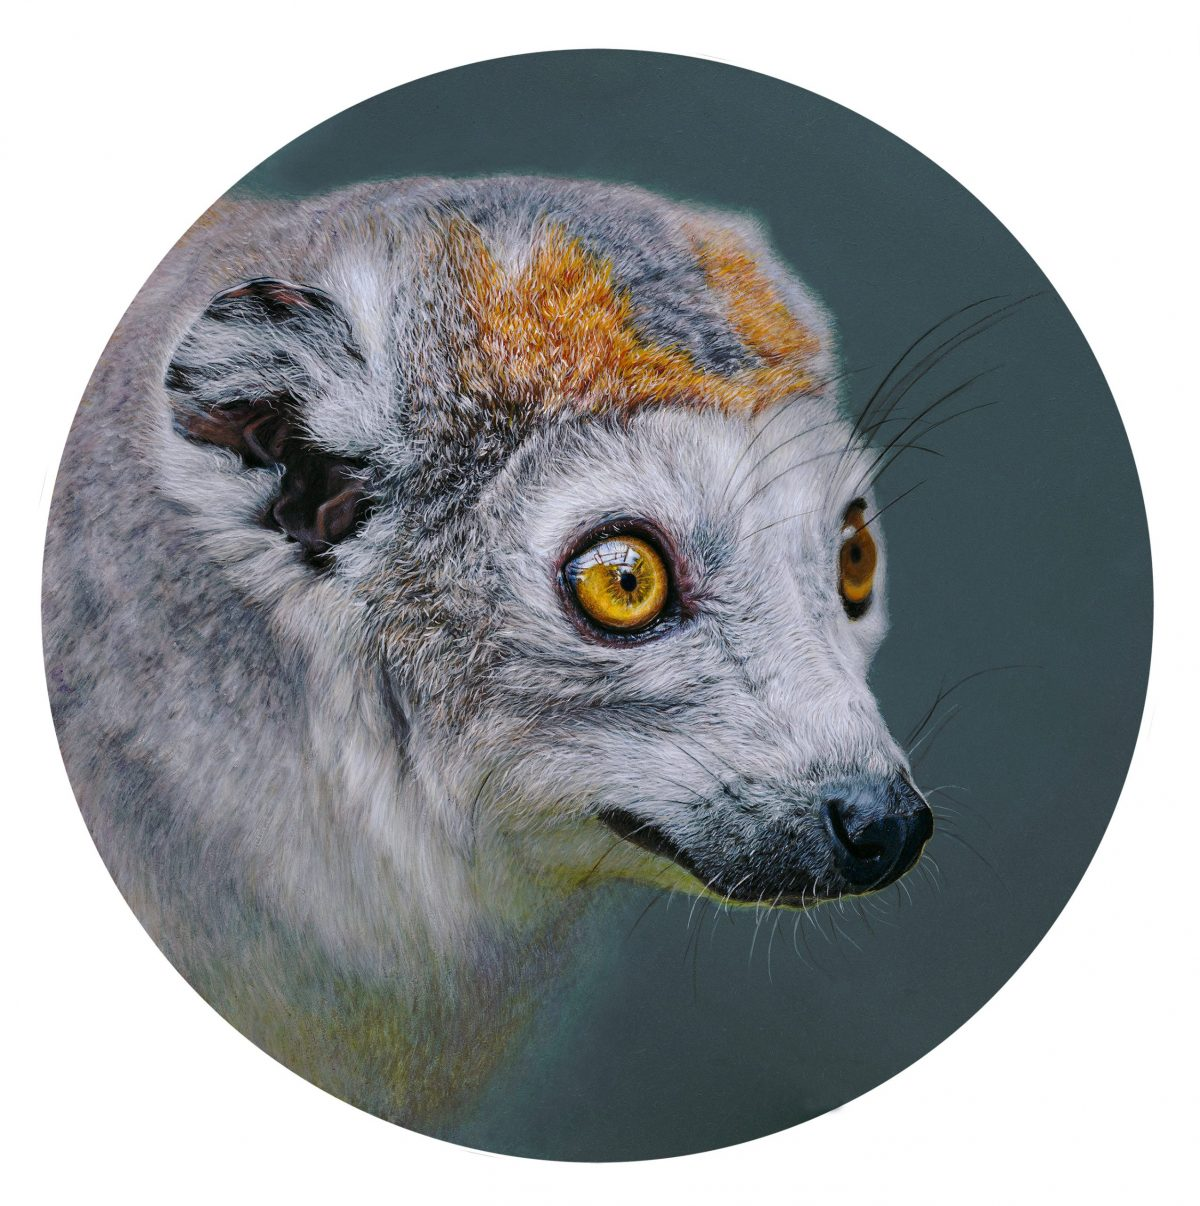 Painting by Emily Pooley of a lemur